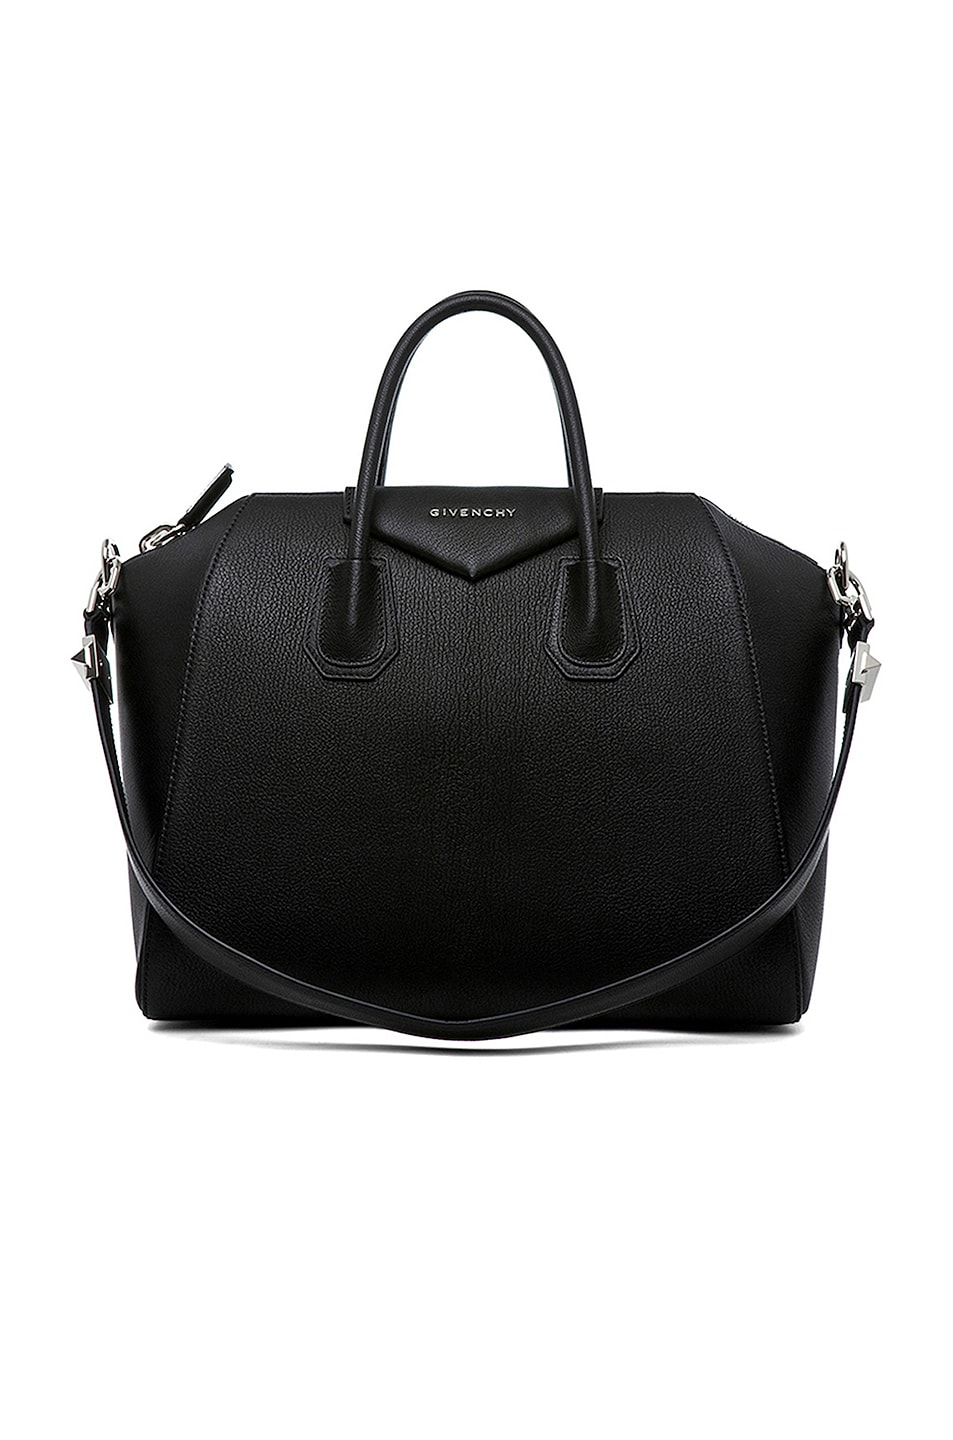 Image 1 of GIVENCHY Medium Antigona in Black